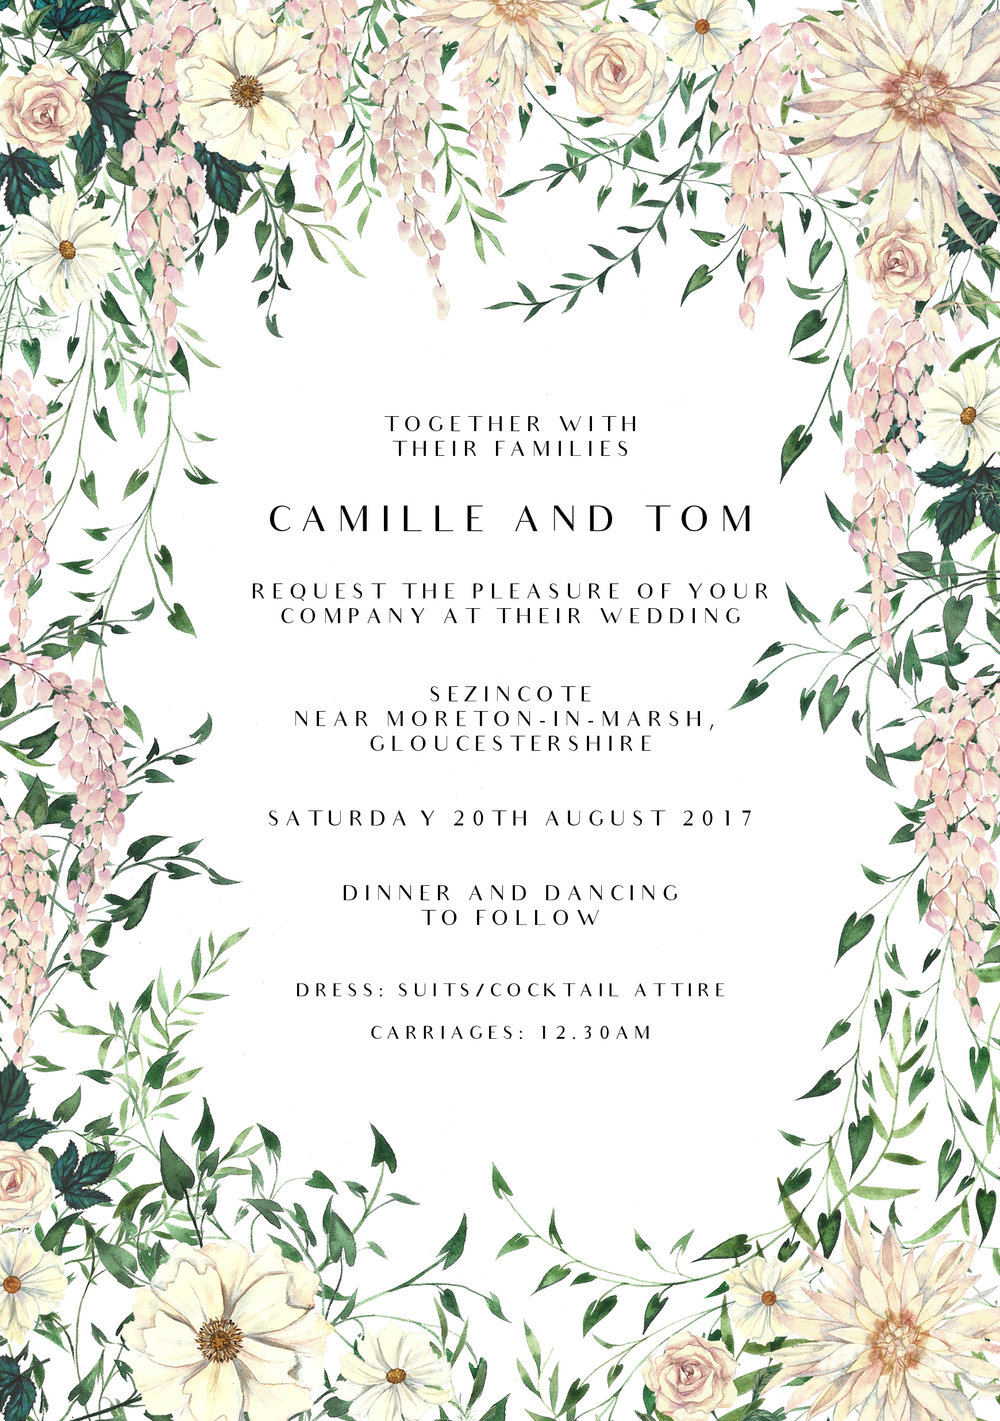 Camille and Tom Invite.jpg